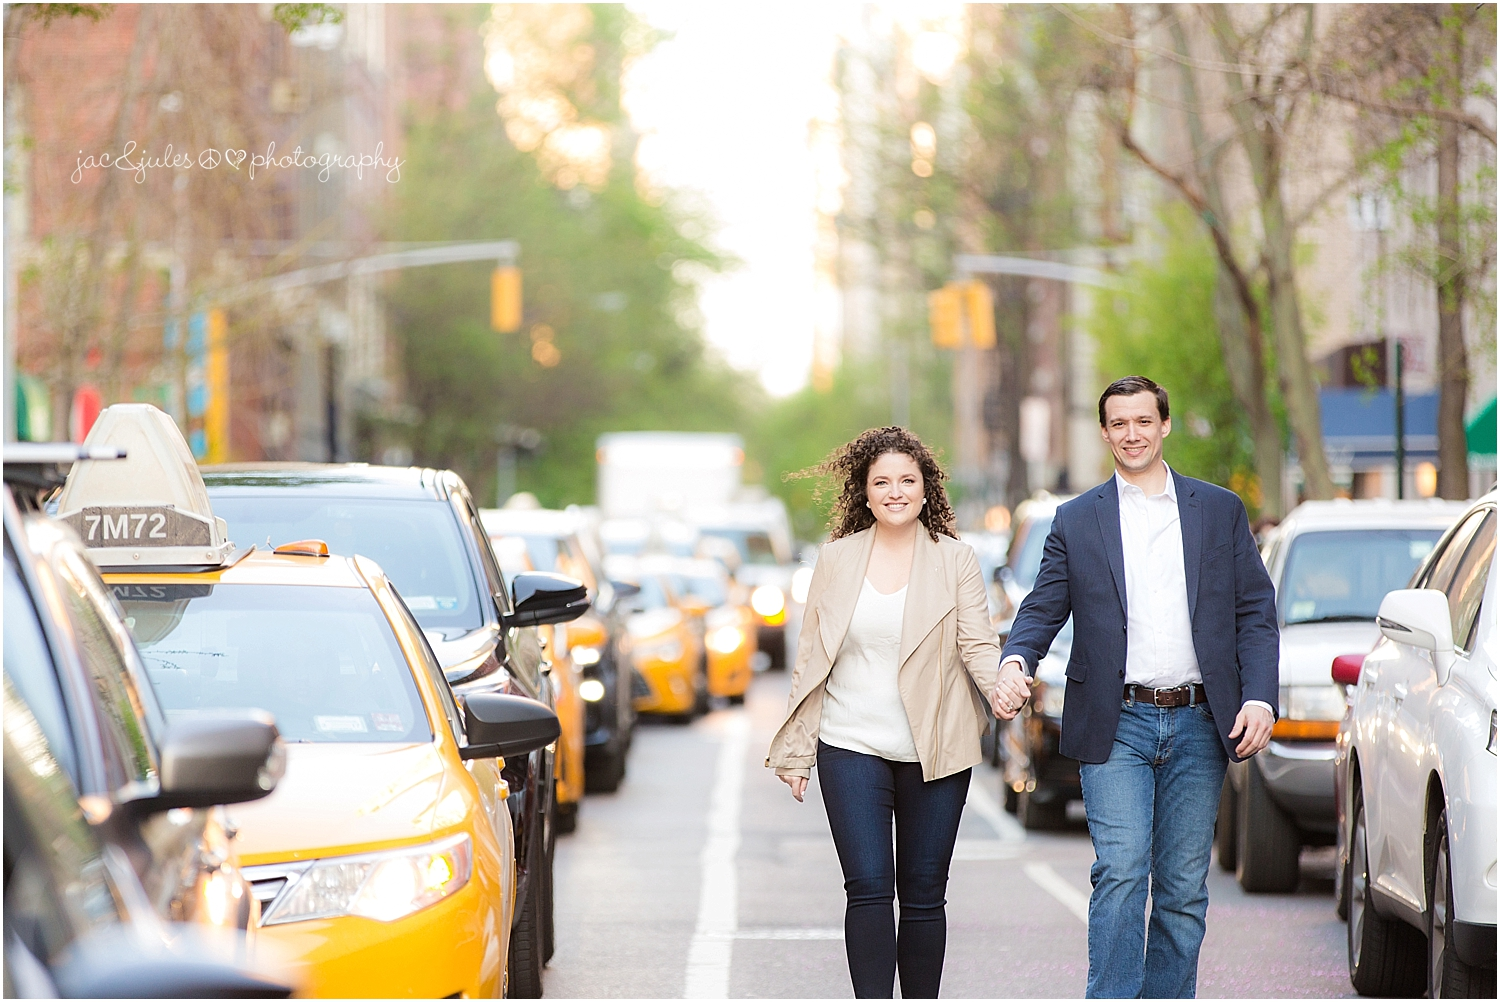 jacnjules photographs engagement in NYC in the meatpacking district